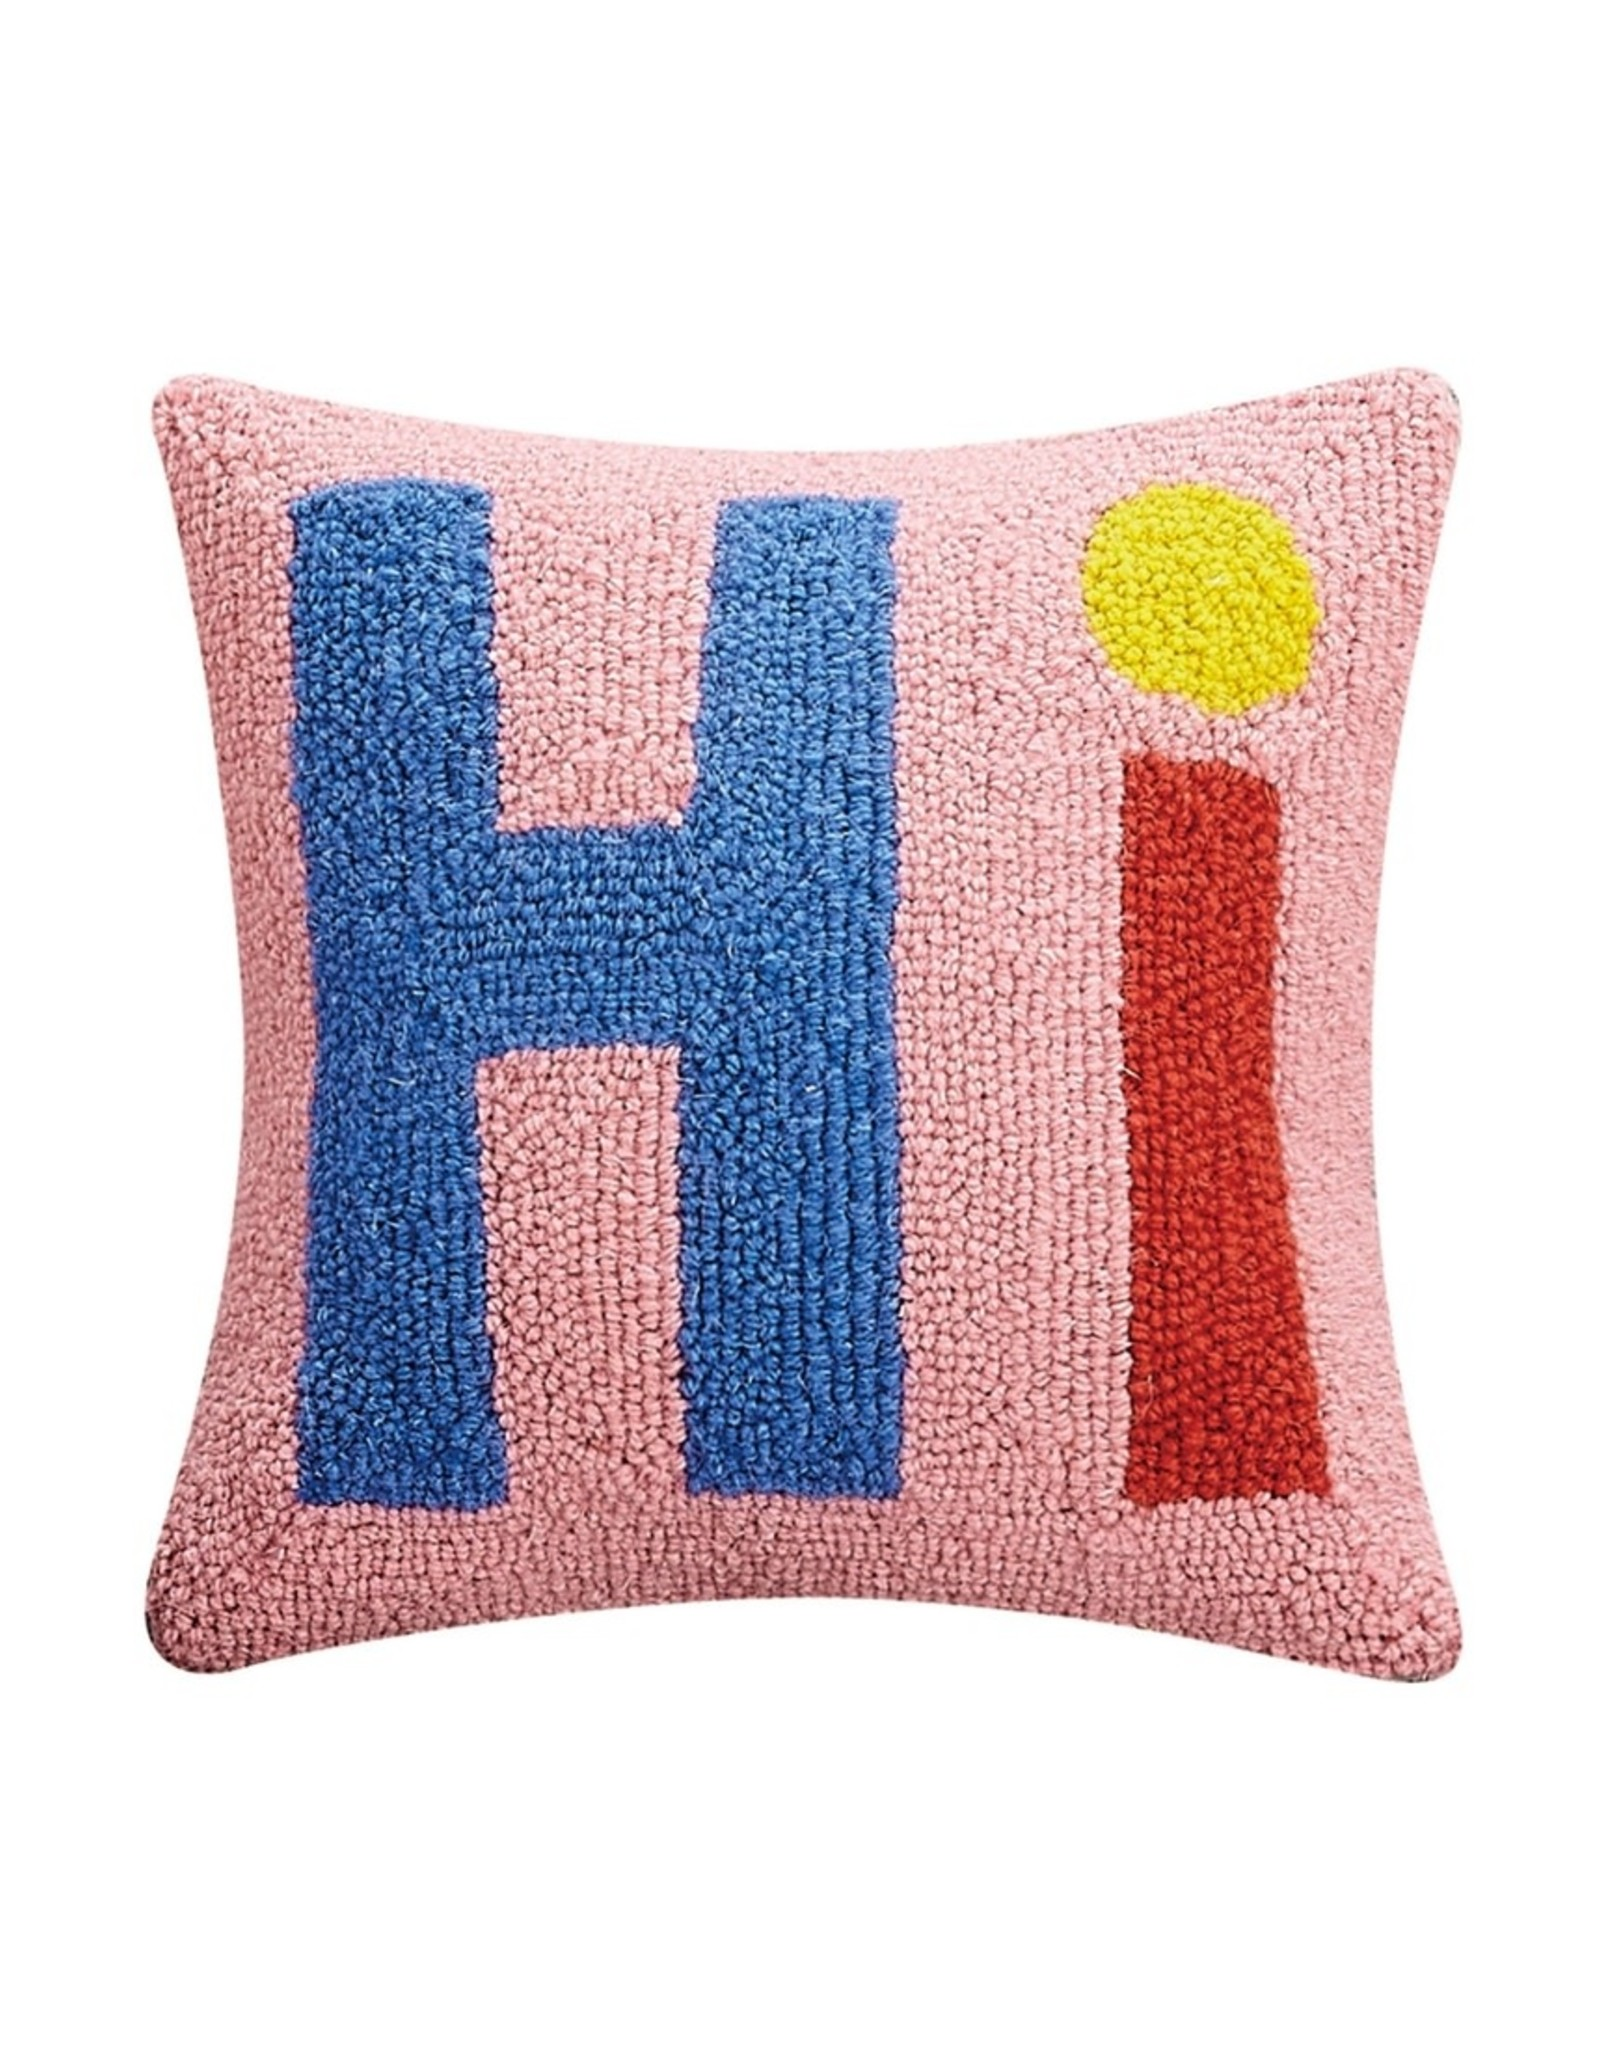 Wool Hooked Pillow - Hi (Square)